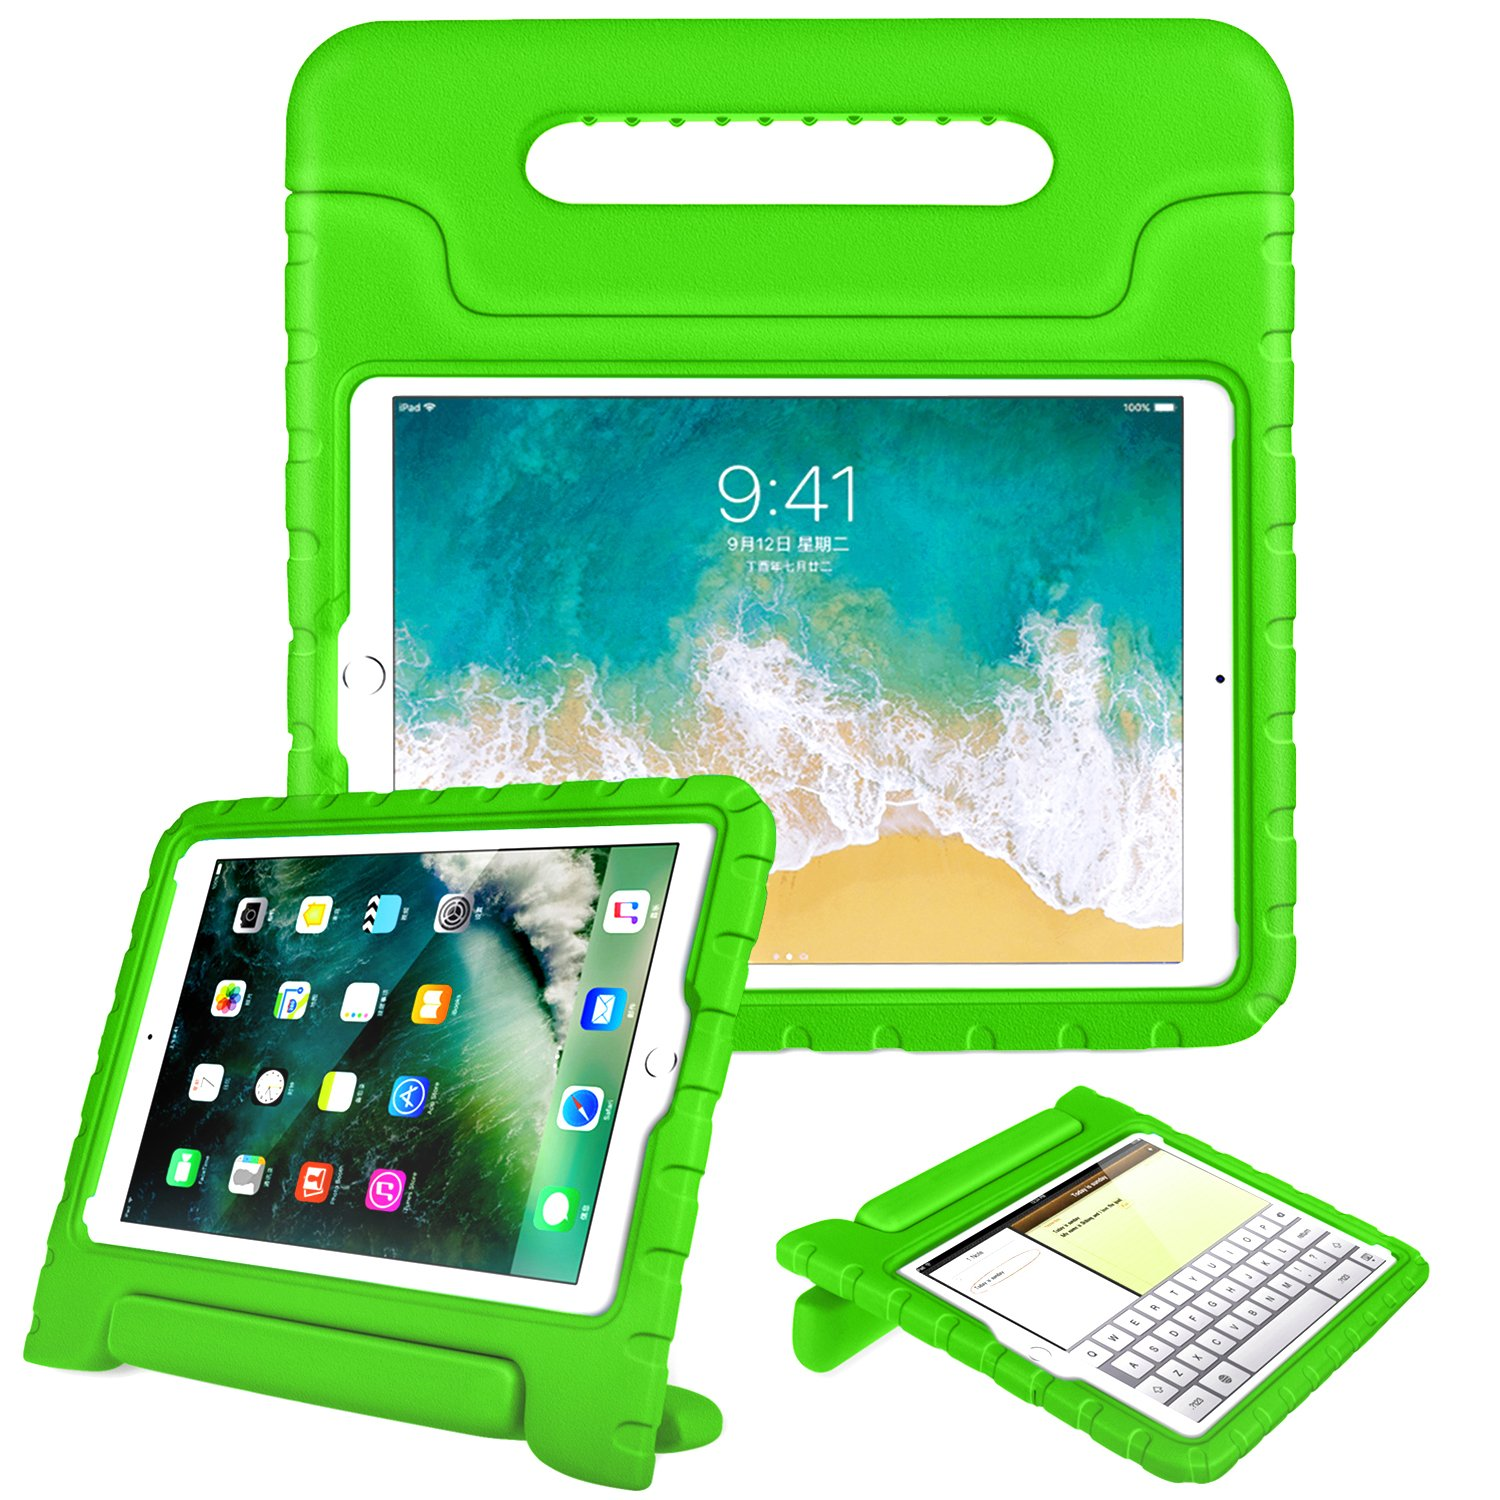 Fintie Case for iPad 6th Generation 2018 / iPad 5th Generation 2017 / iPad Air 2 / iPad Air (9.7 Inch) - Kiddie Series Light Weight Shock Proof Convertible Handle Stand Cover Kids Friendly, Green